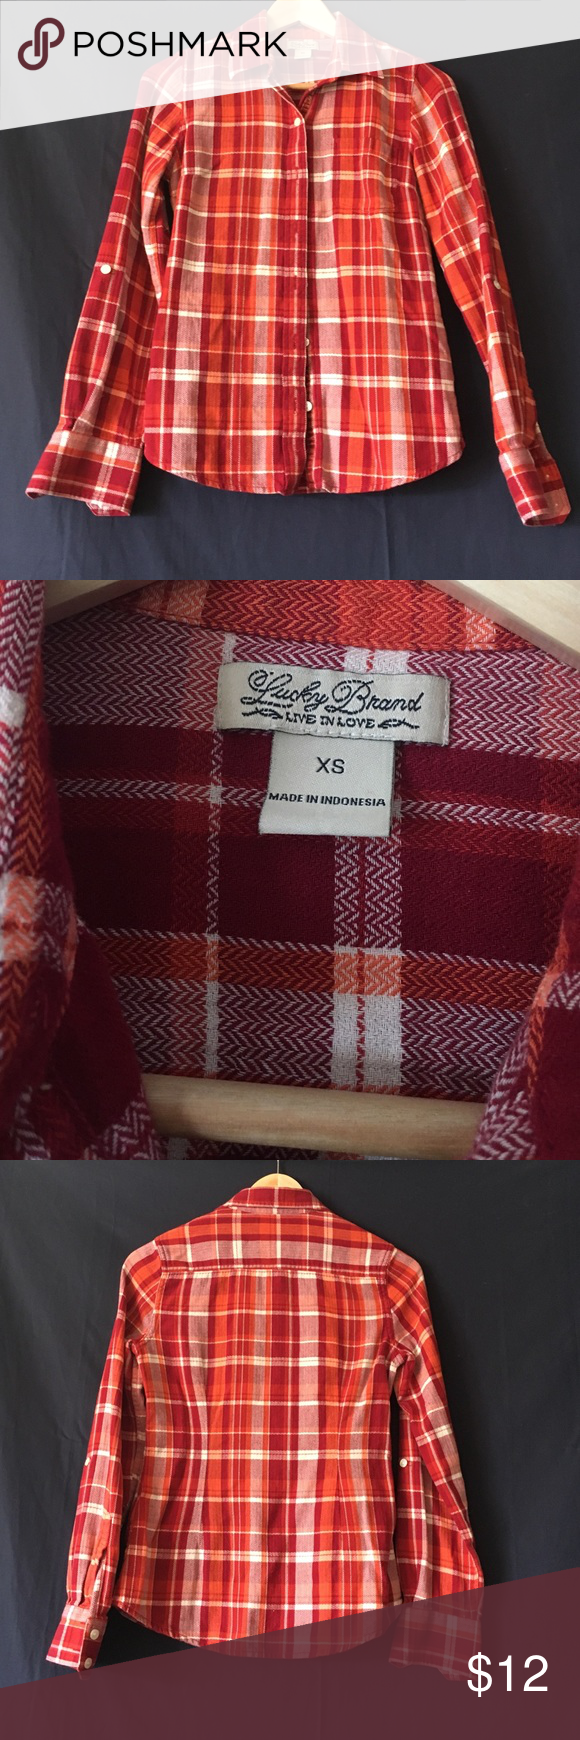 Button up flannel shirts  saleLucky Brand flannel  Lucky brand Flannels and Lucky